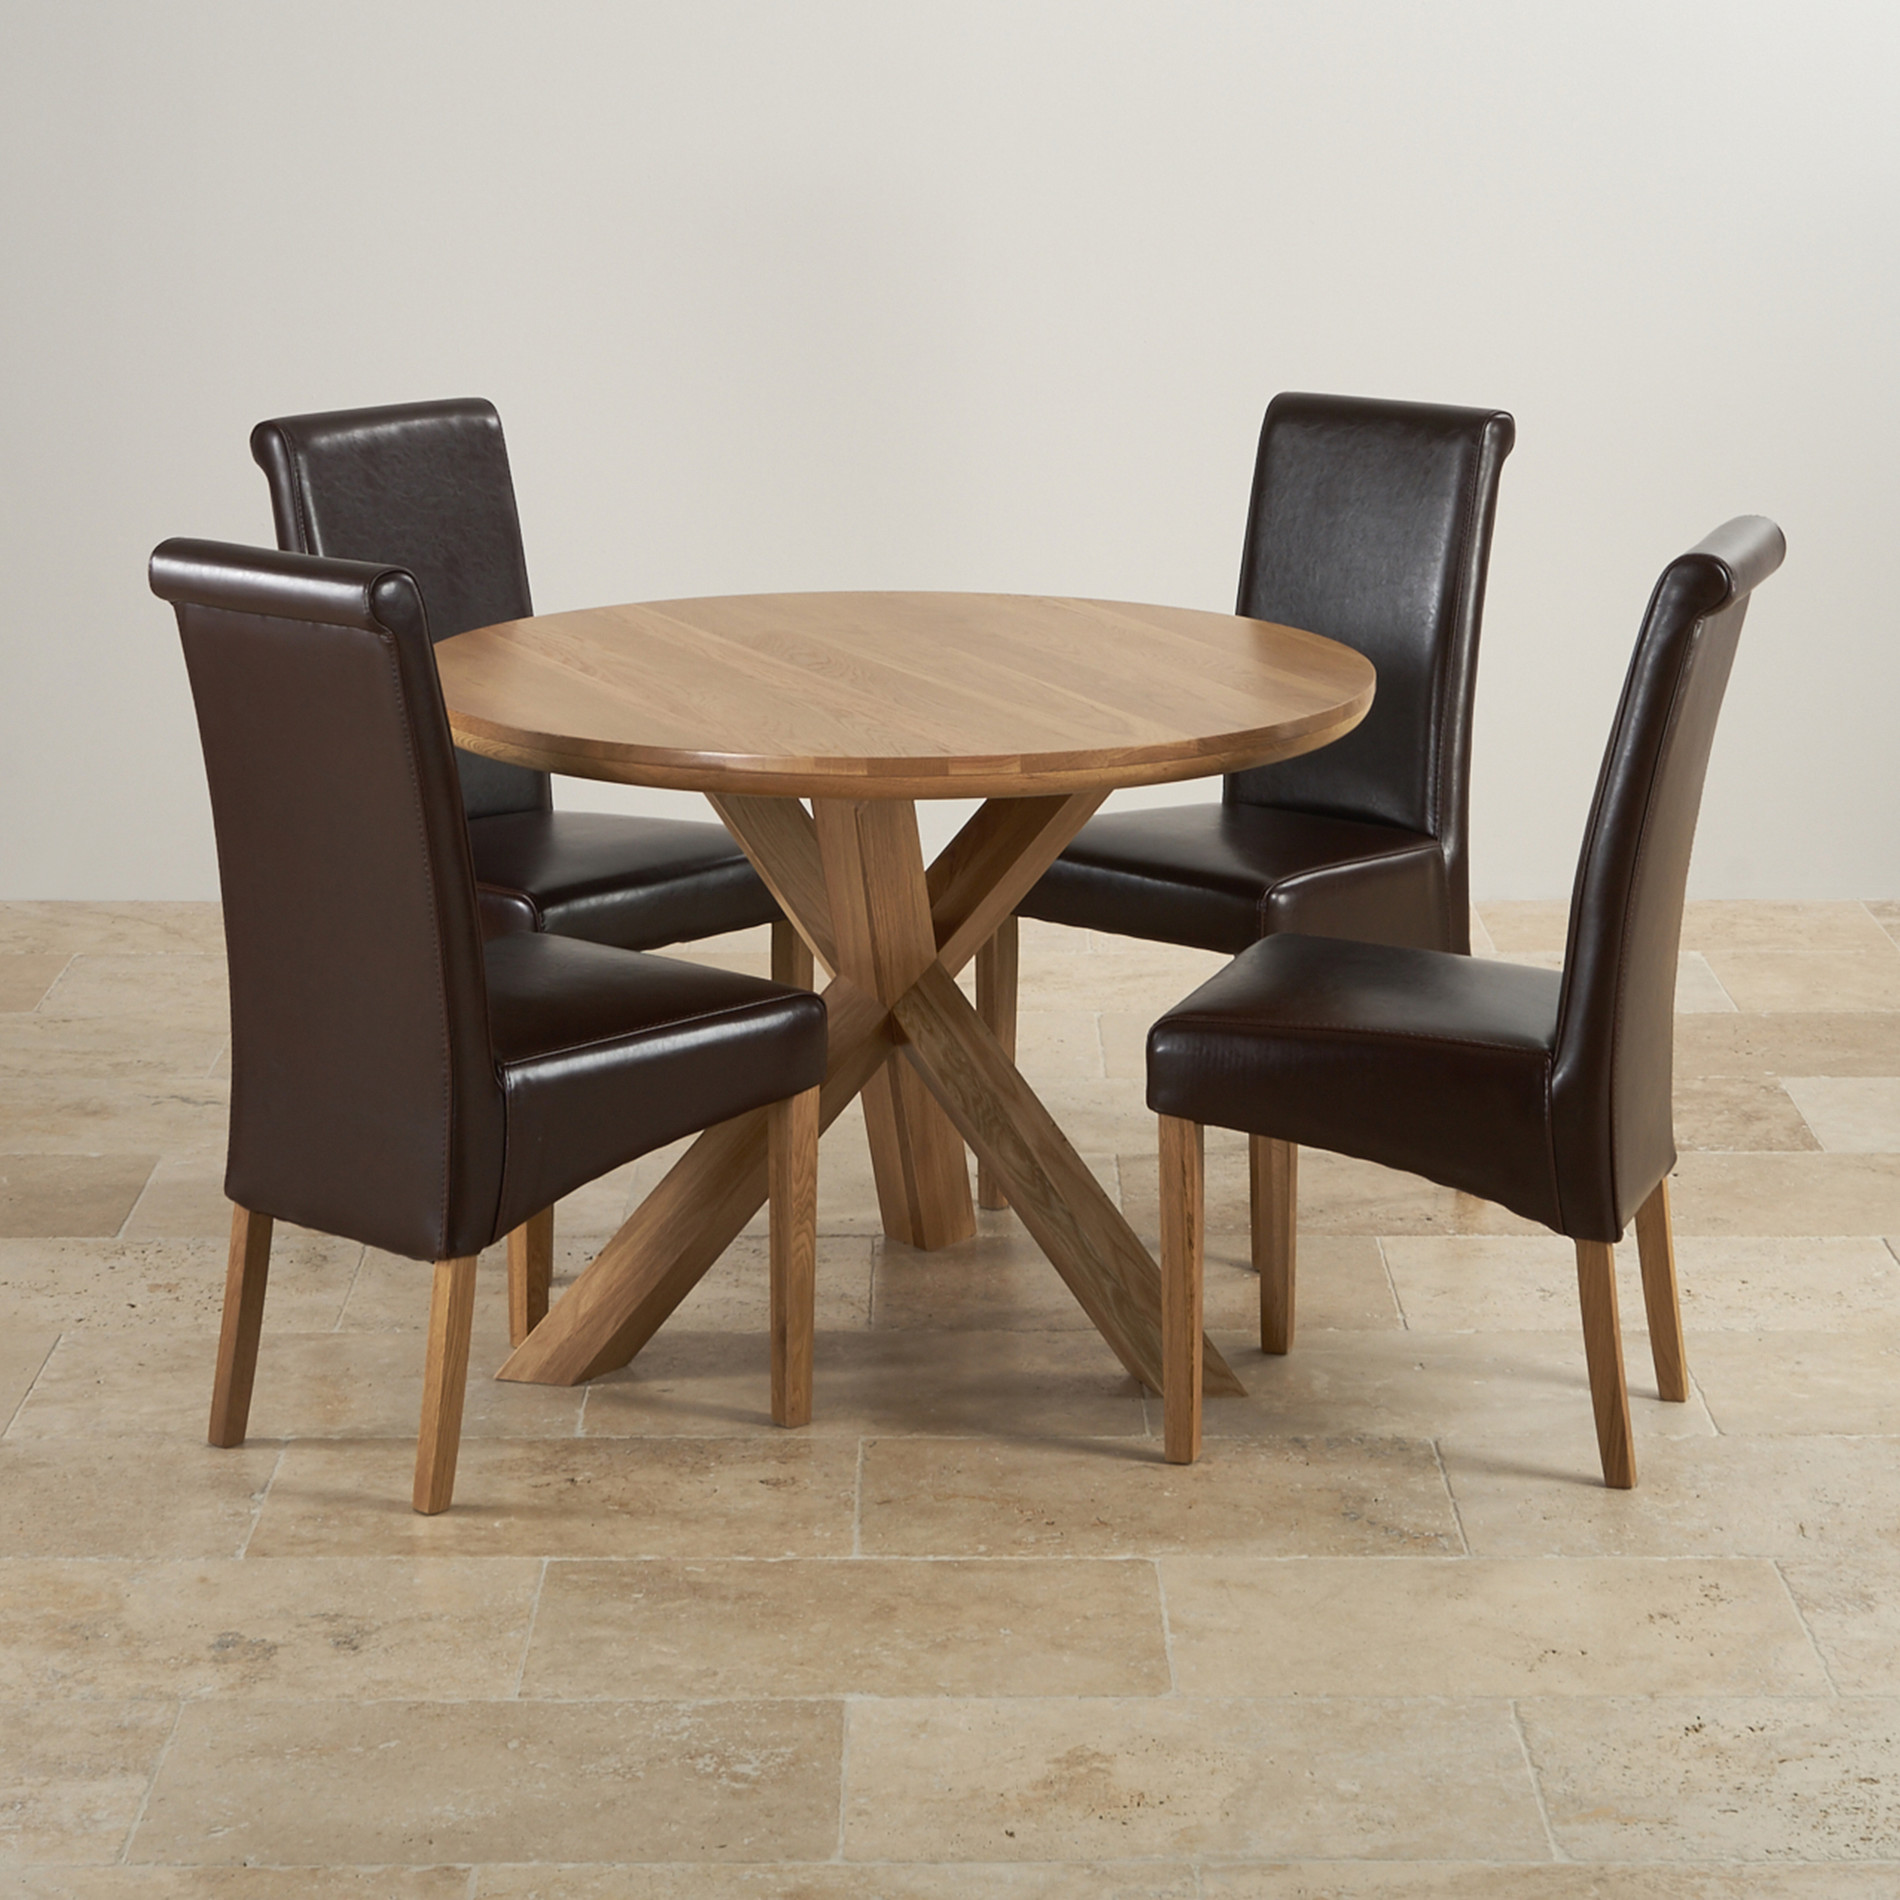 Leather Dining Set: Natural Real Oak Dining Set: Round Table + 4 Brown Leather